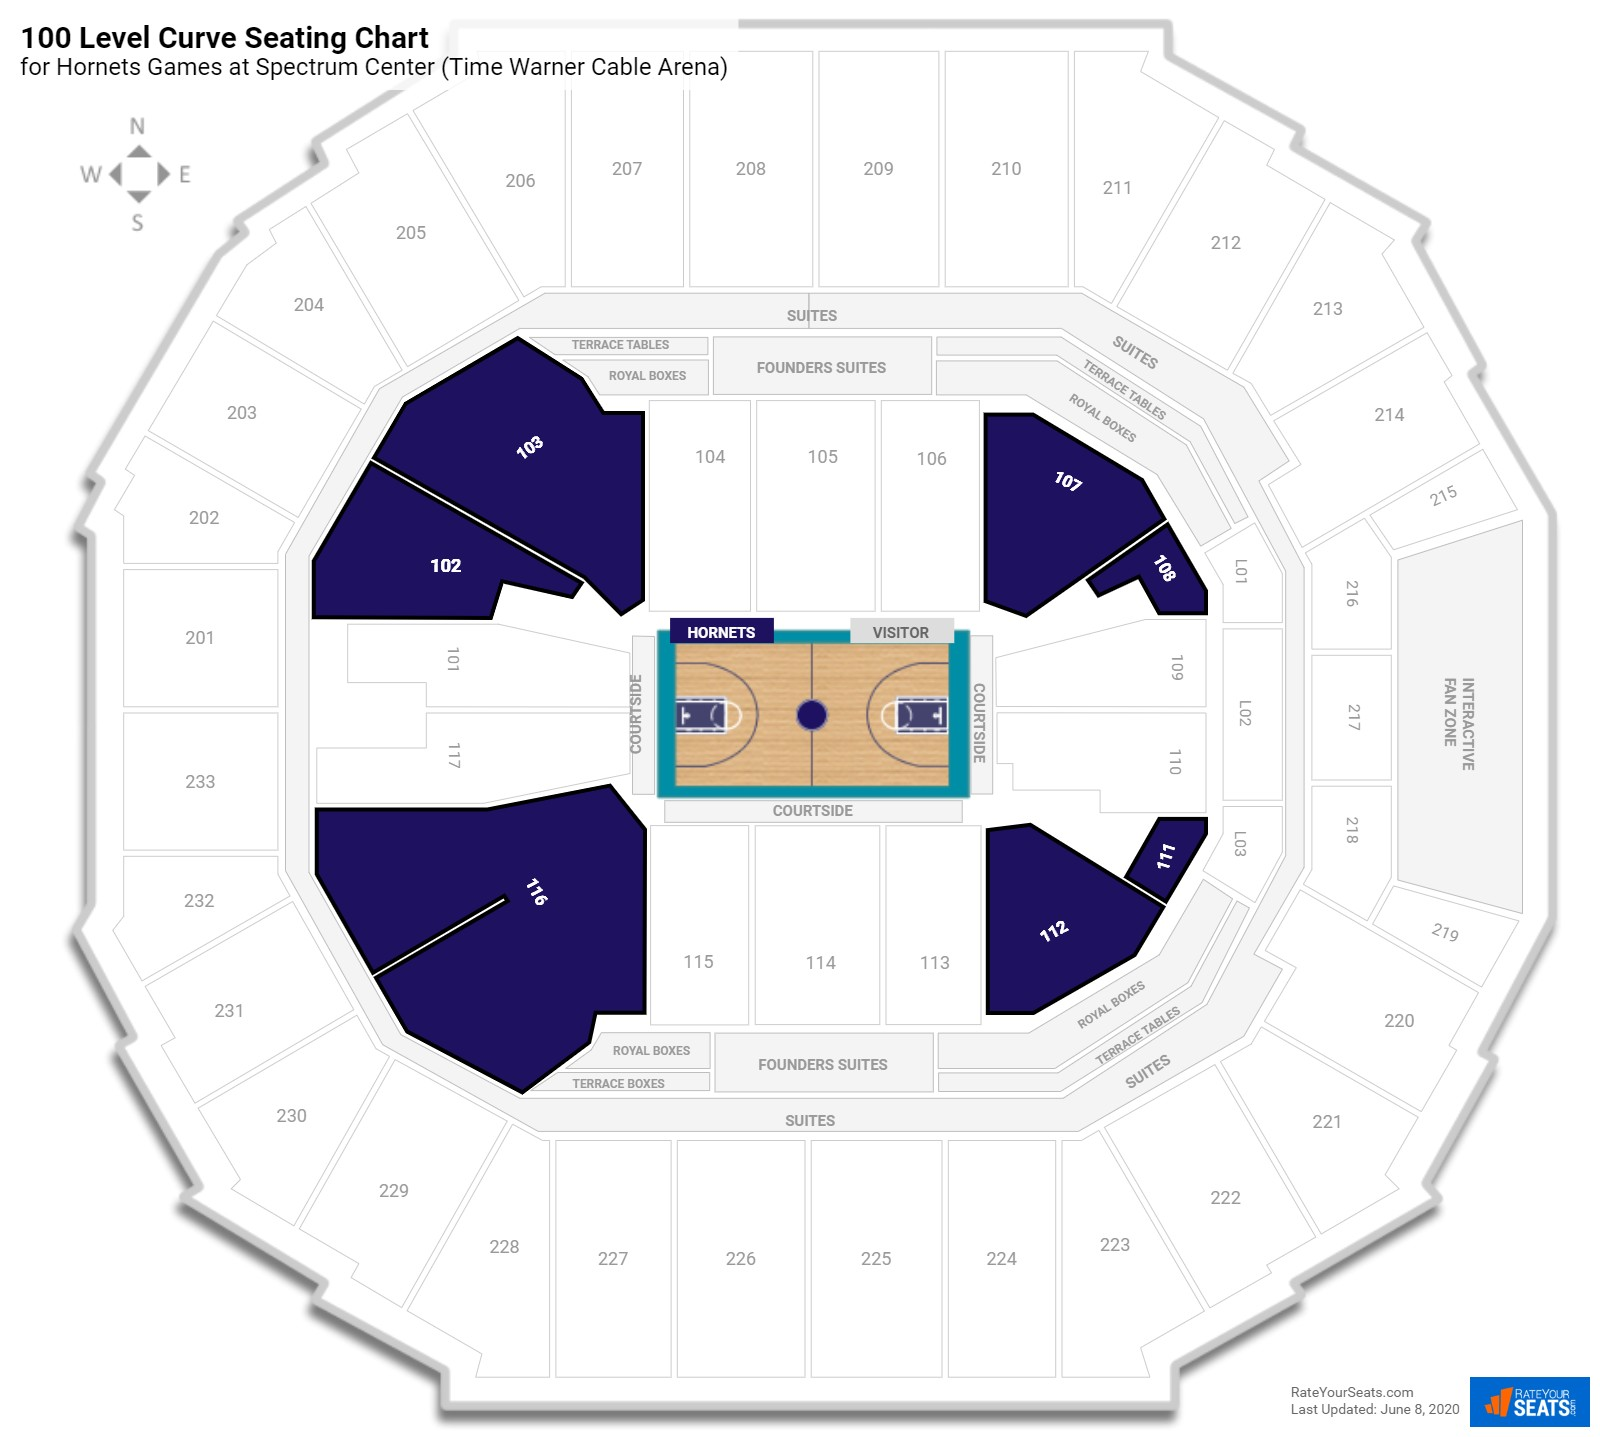 Spectrum Center (Time Warner Cable Arena) 100 Level Corner seating chart